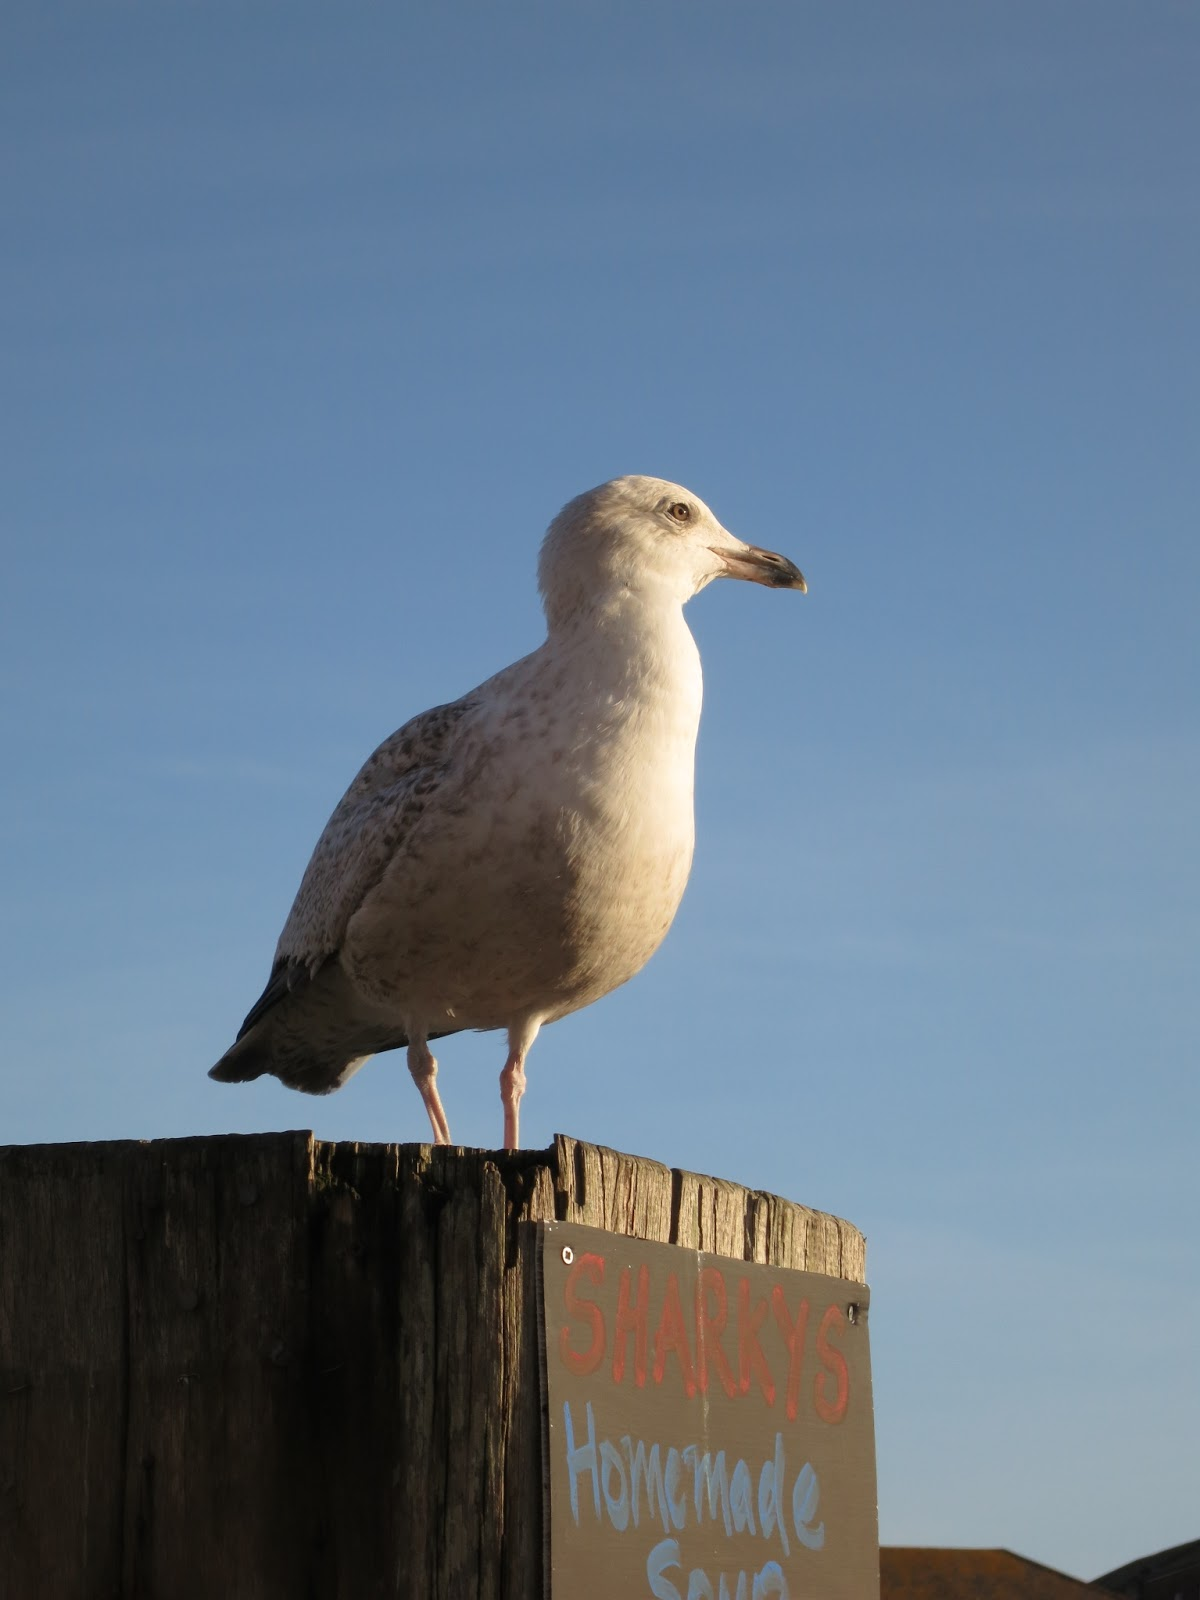 Gull on wooden post wit advert for Home Made Soup.